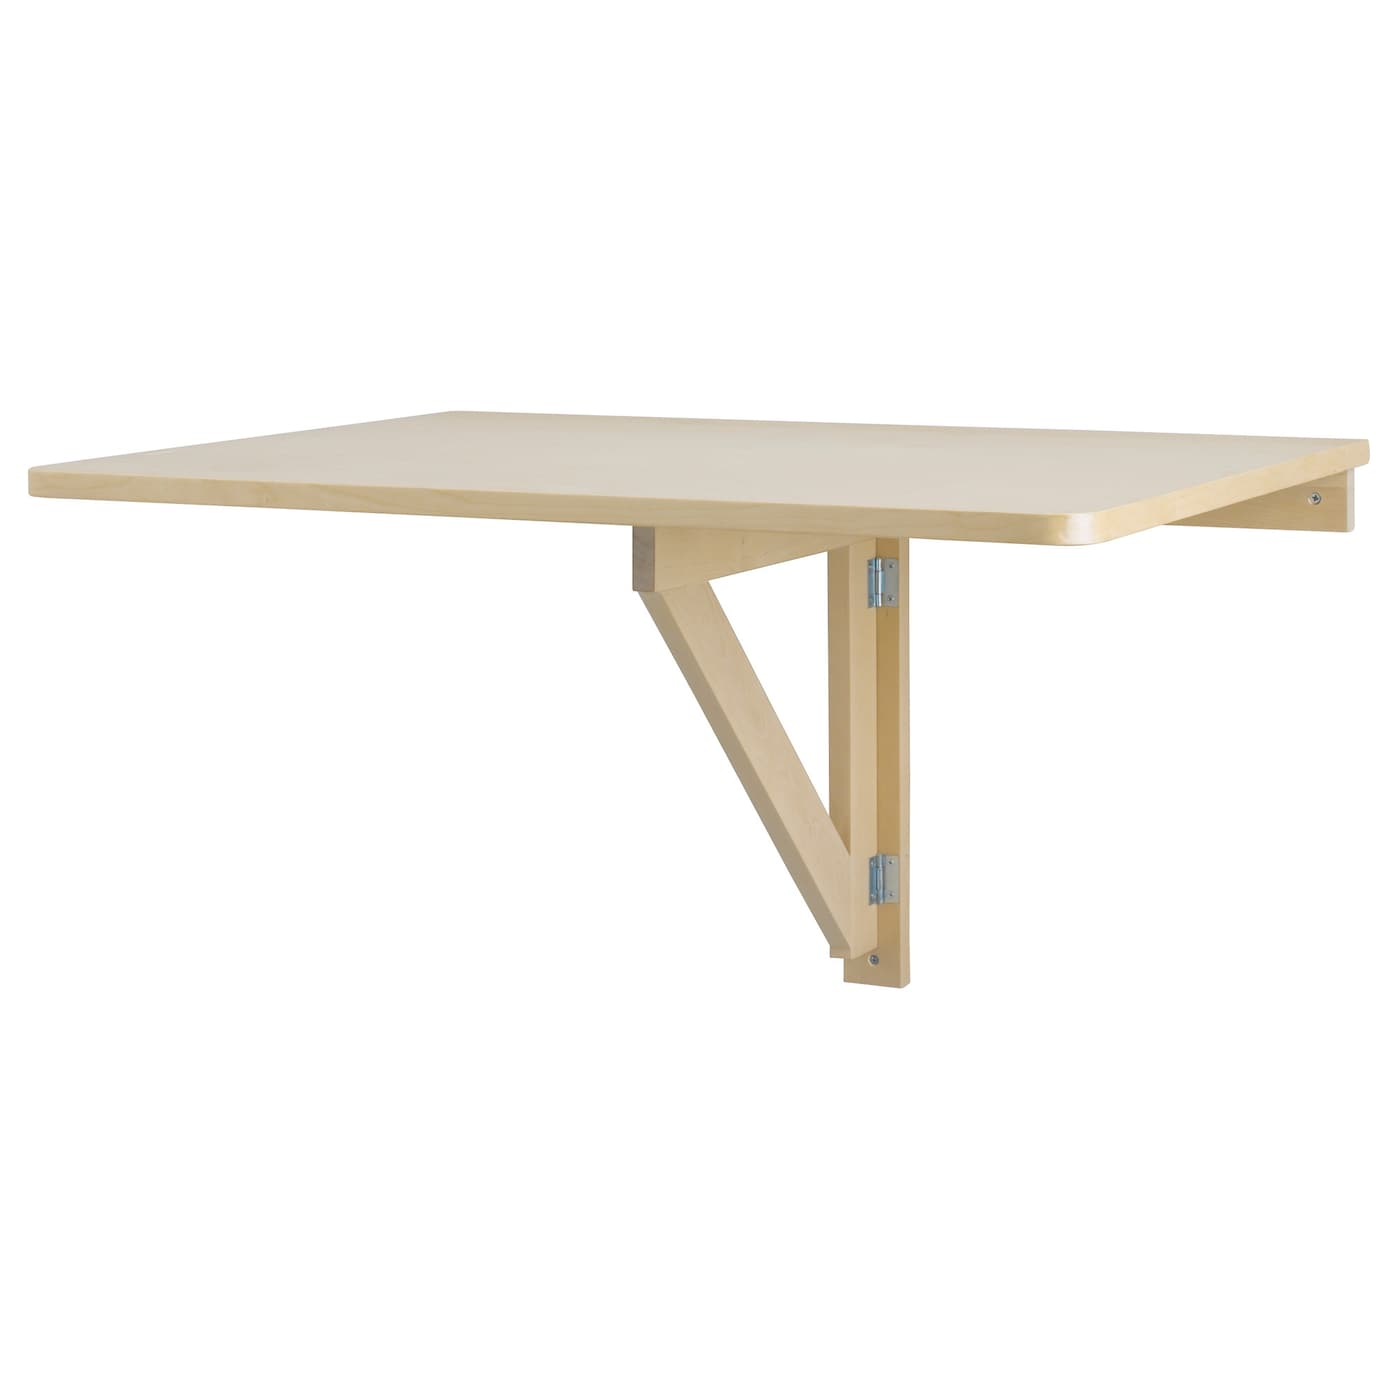 Ikea Norbo Wall Mounted Drop Leaf Table Solid Wood Is A Hardwearing Natural Material